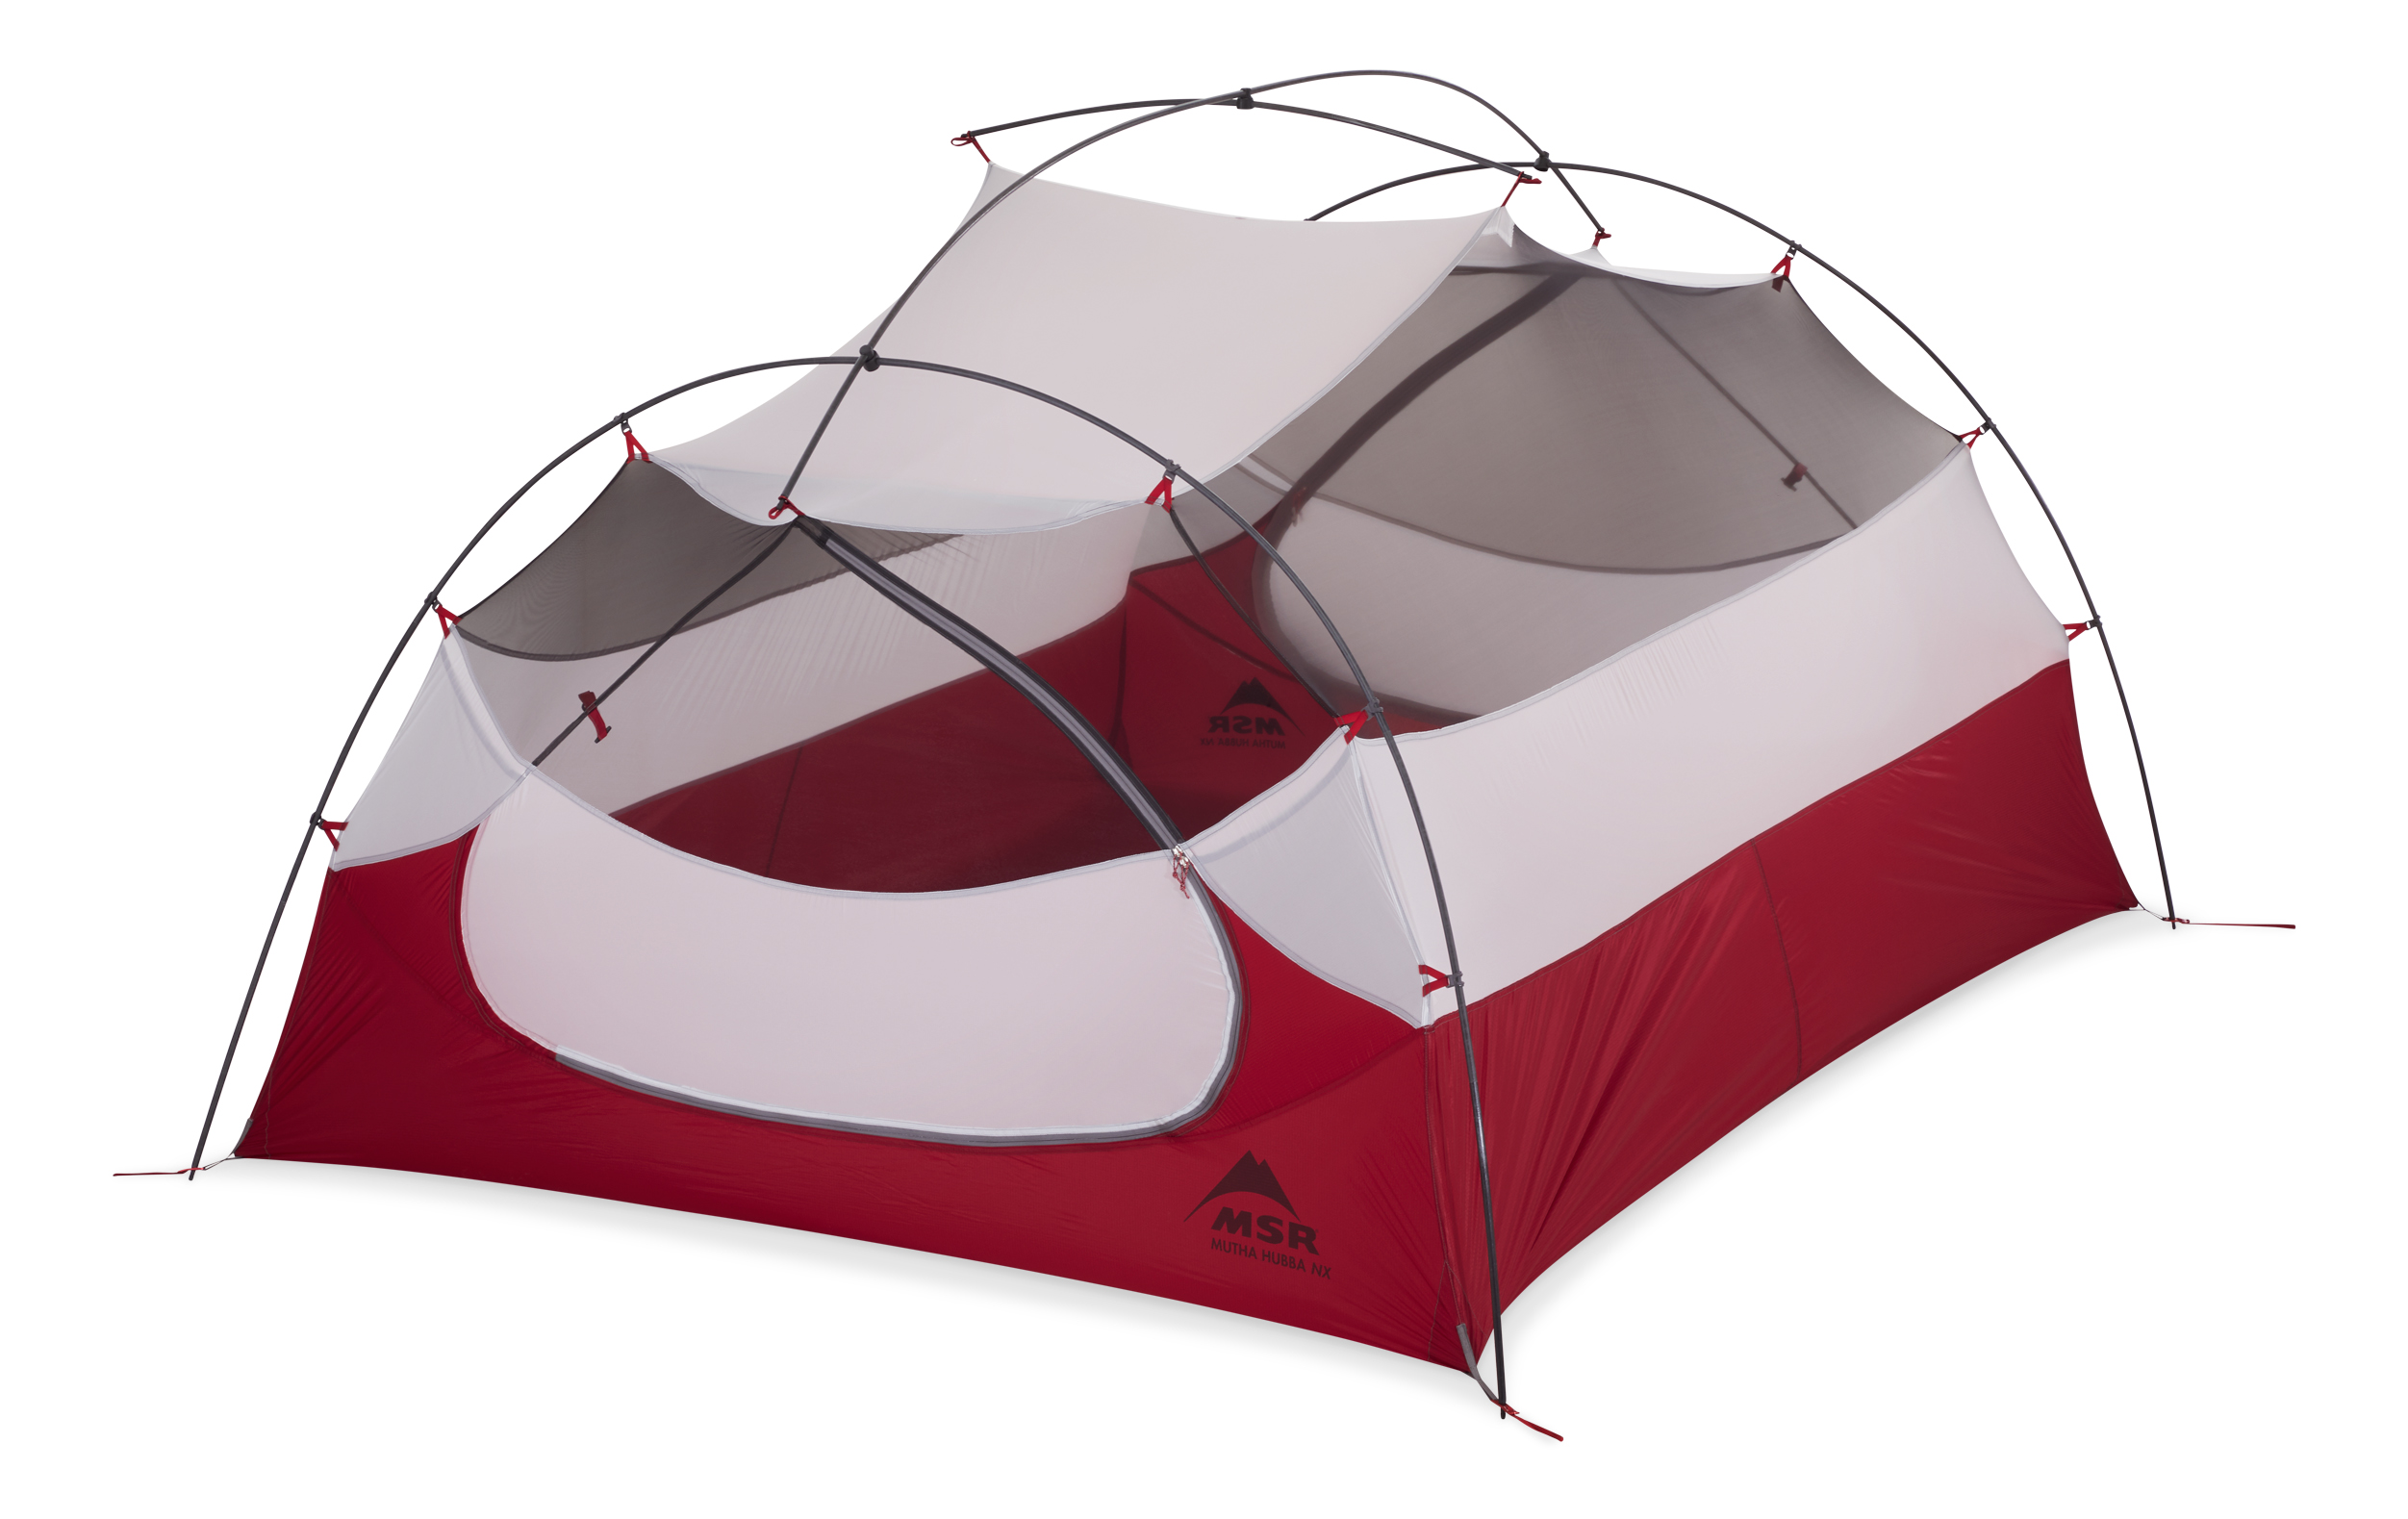 Mutha Hubba™ NX 3-Person Backpacking Tent  sc 1 st  MSR & MSR® Mutha Hubba™ NX 3-Person Backpacking Tent | MSR Gear